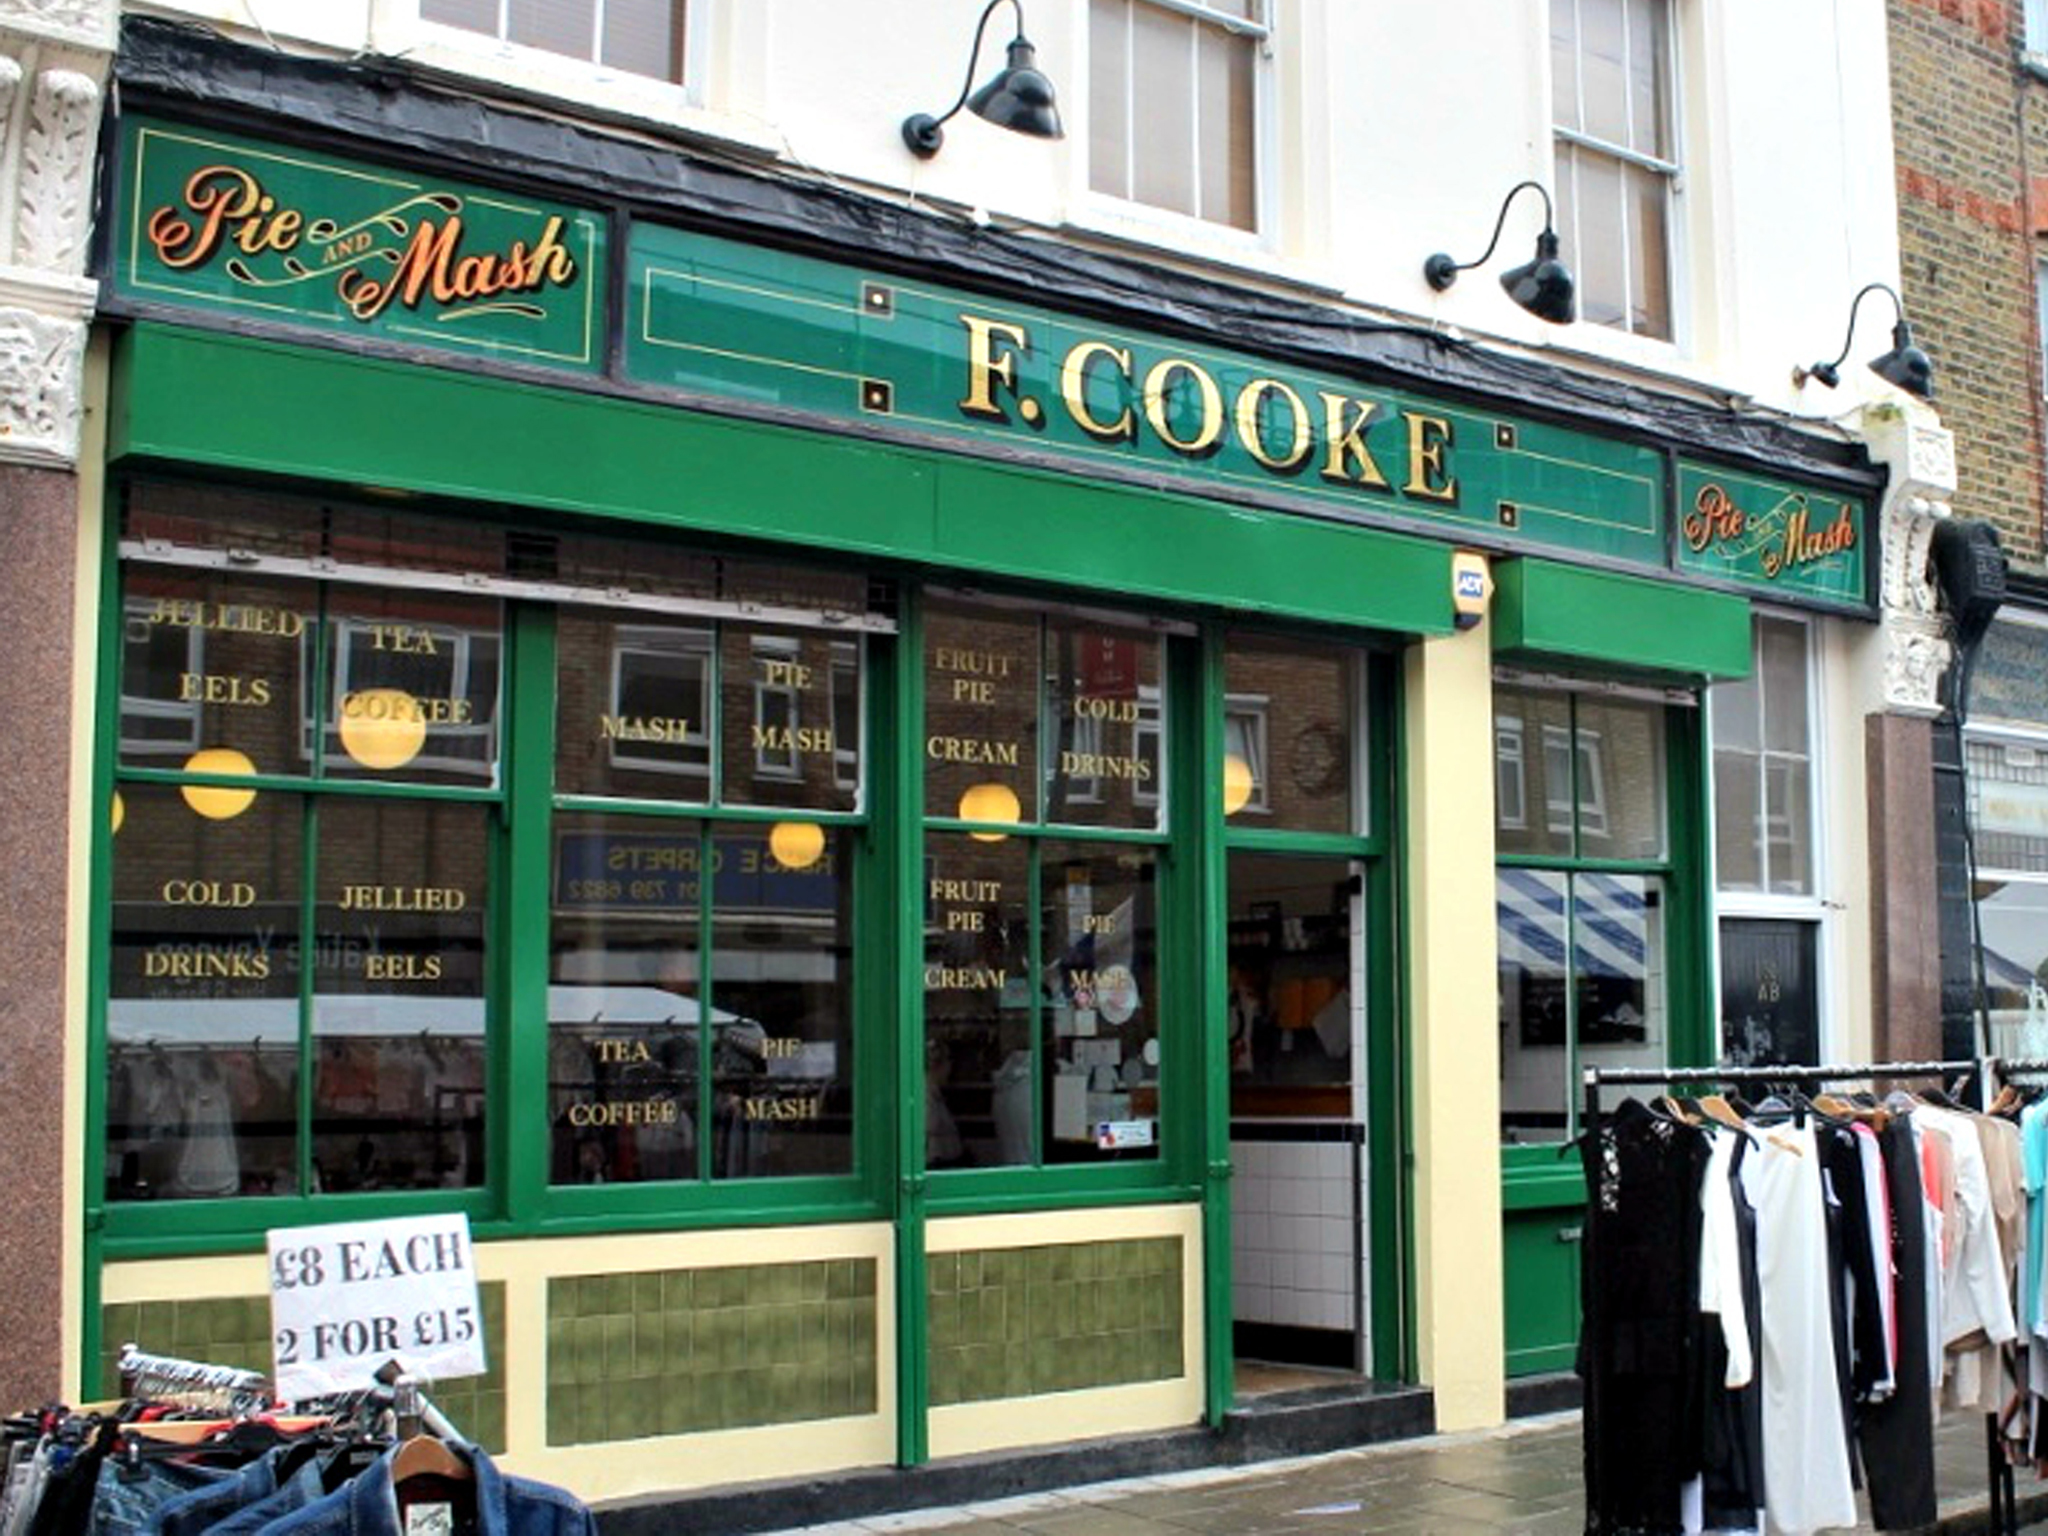 London's best pie & mash shops, F Cooke Hoxton